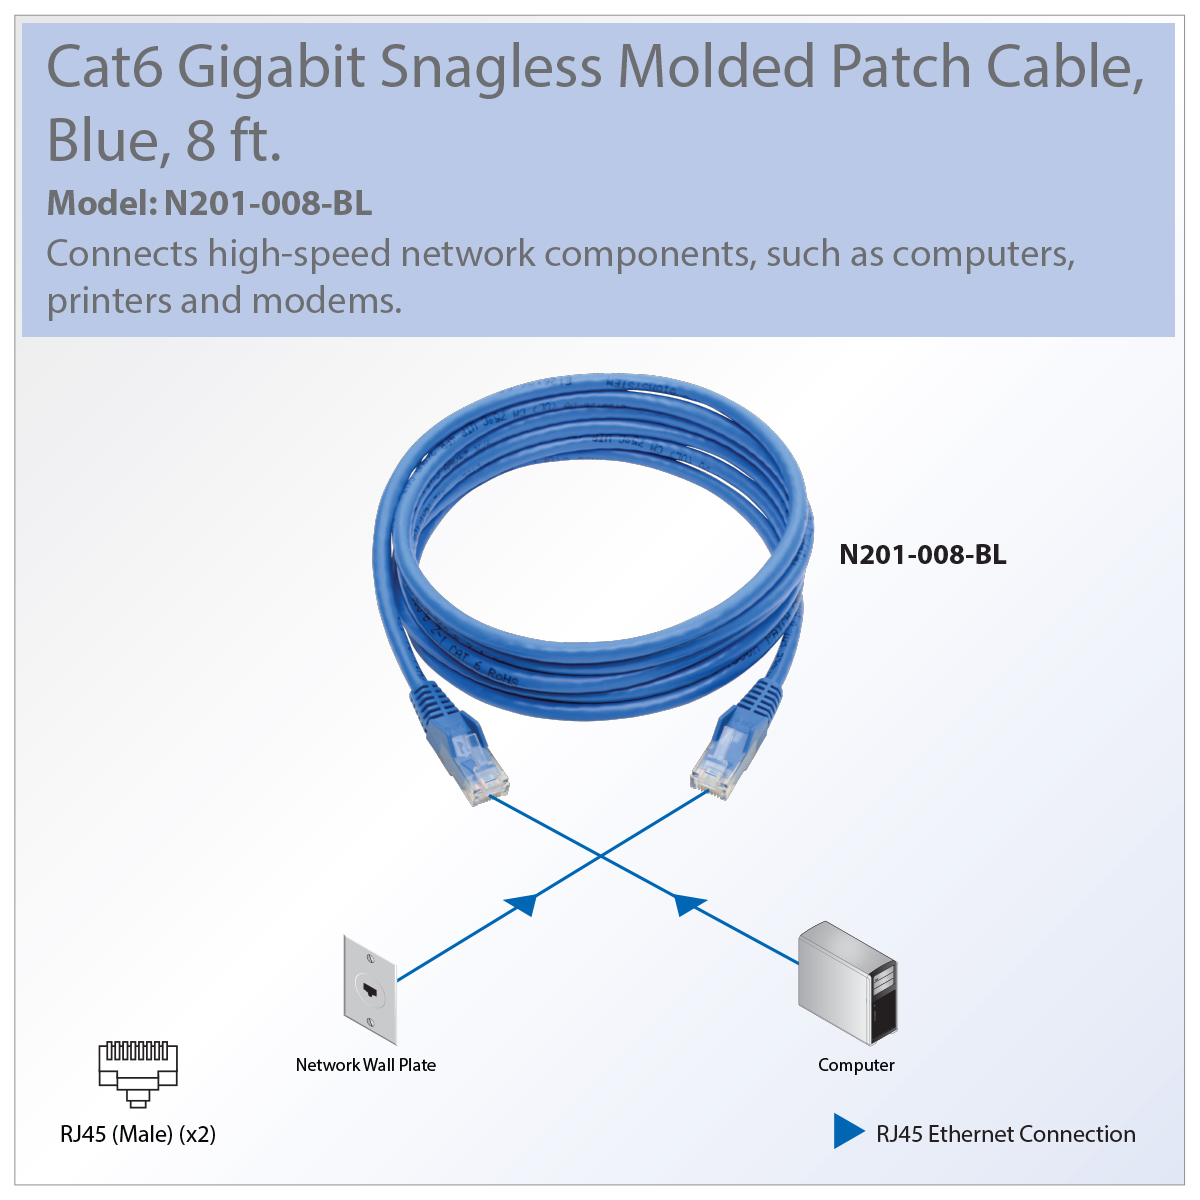 hight resolution of recommended patch cable for connecting components in your cat6 gigabit ethernet network